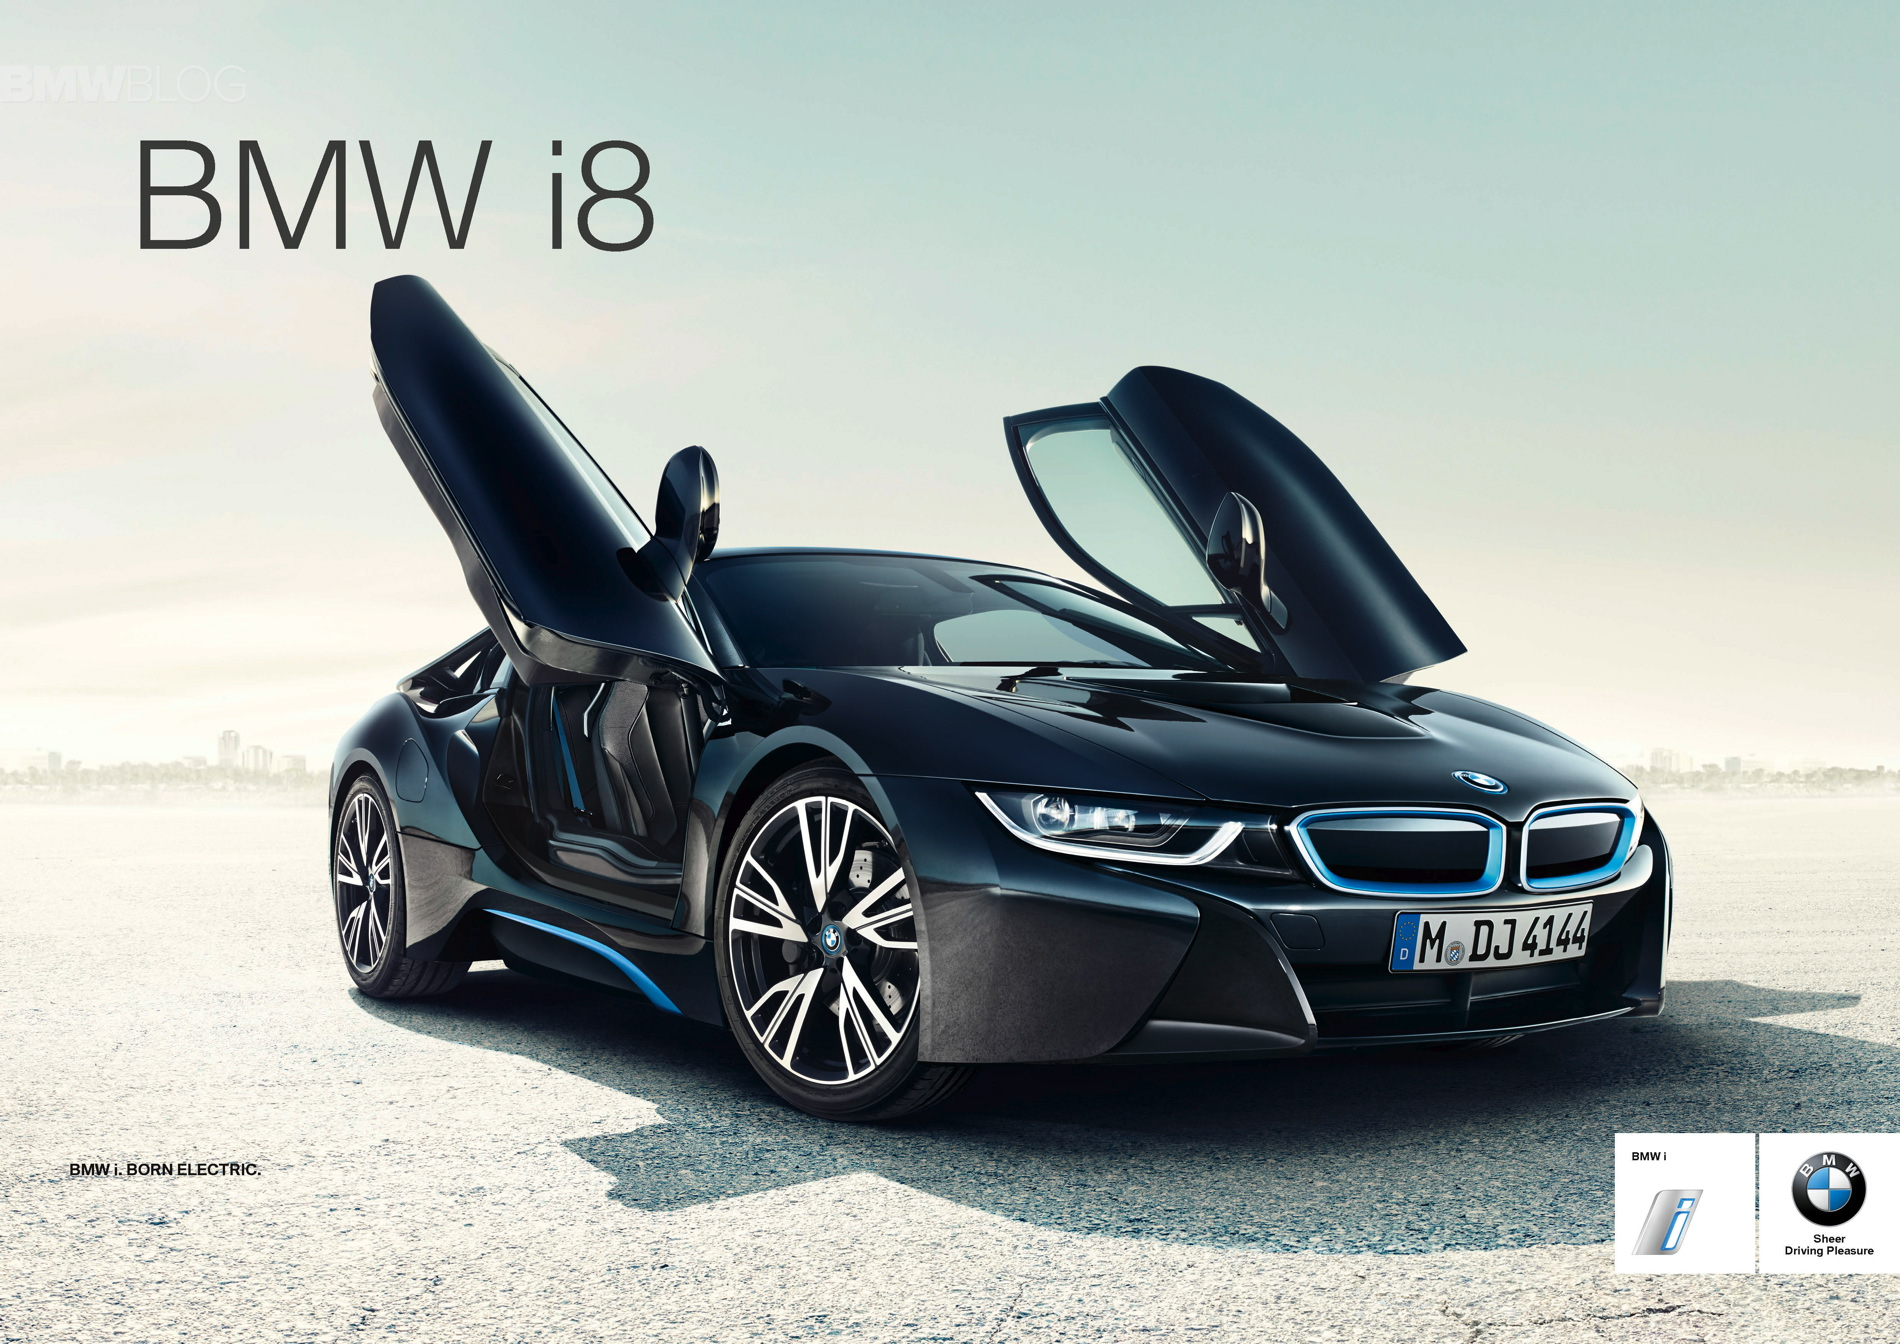 BMW i8: 300,000 EUR advertising cost per car sold?